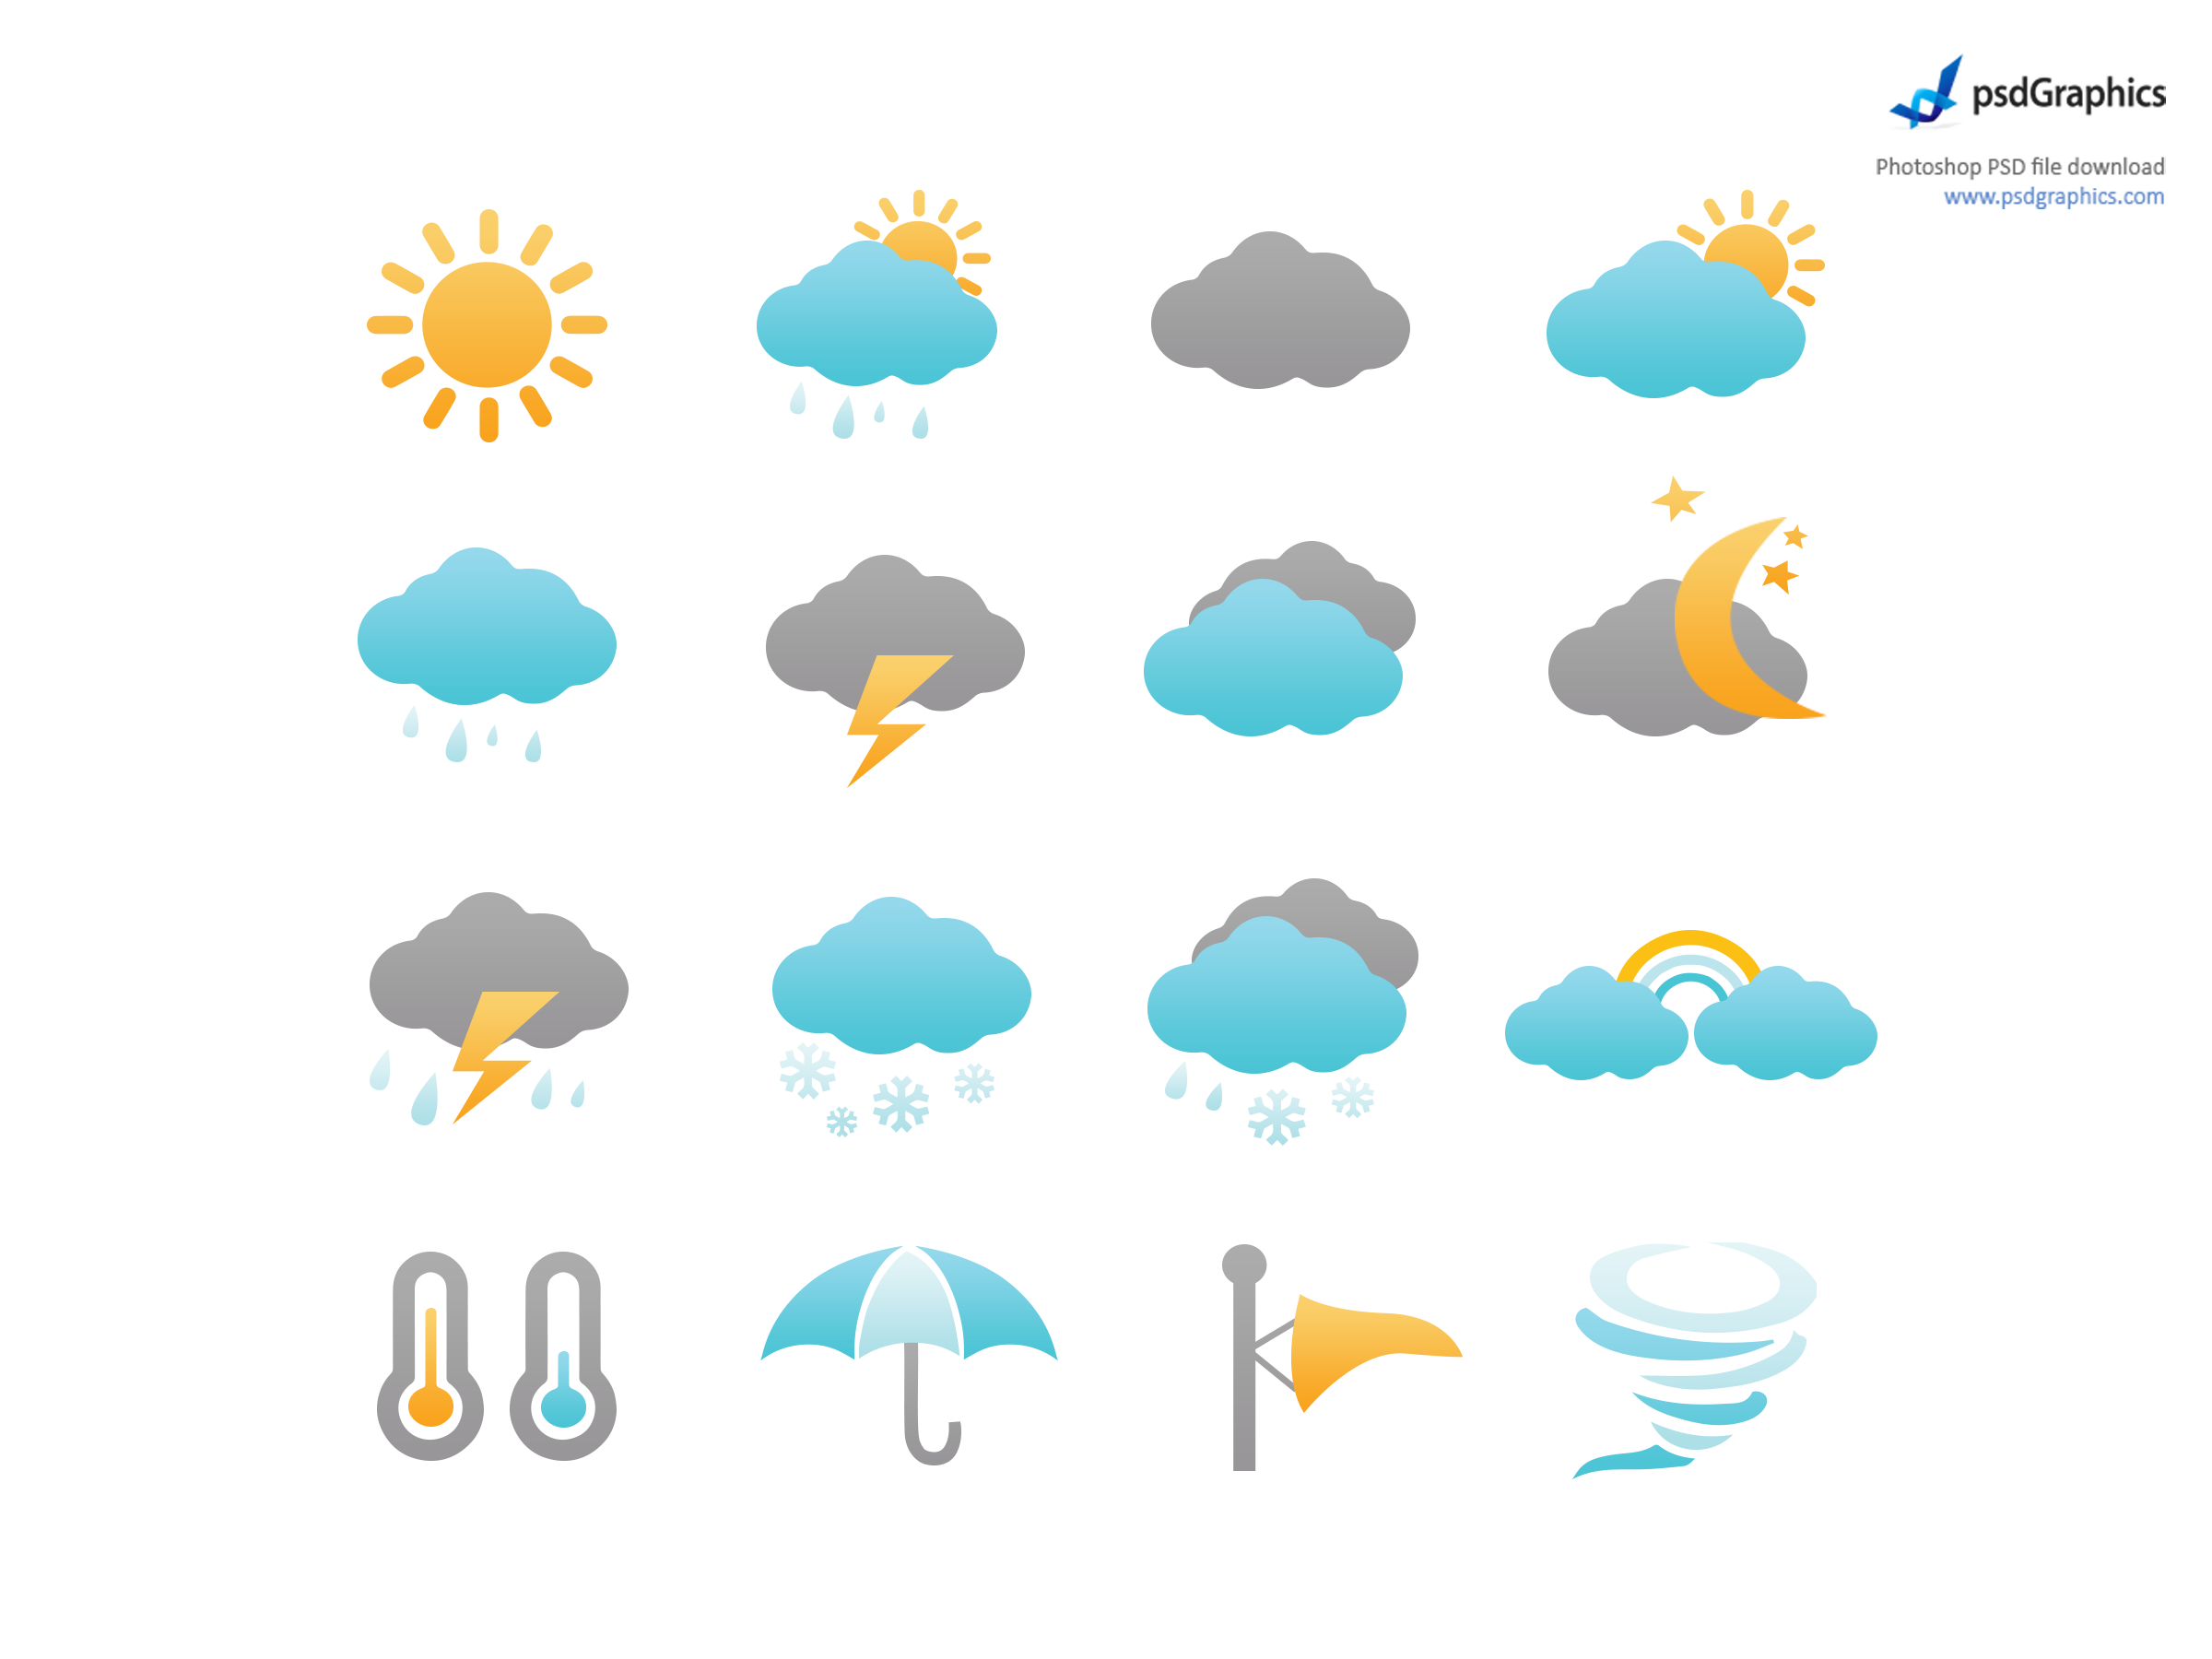 Symbols vector weather. White background images all